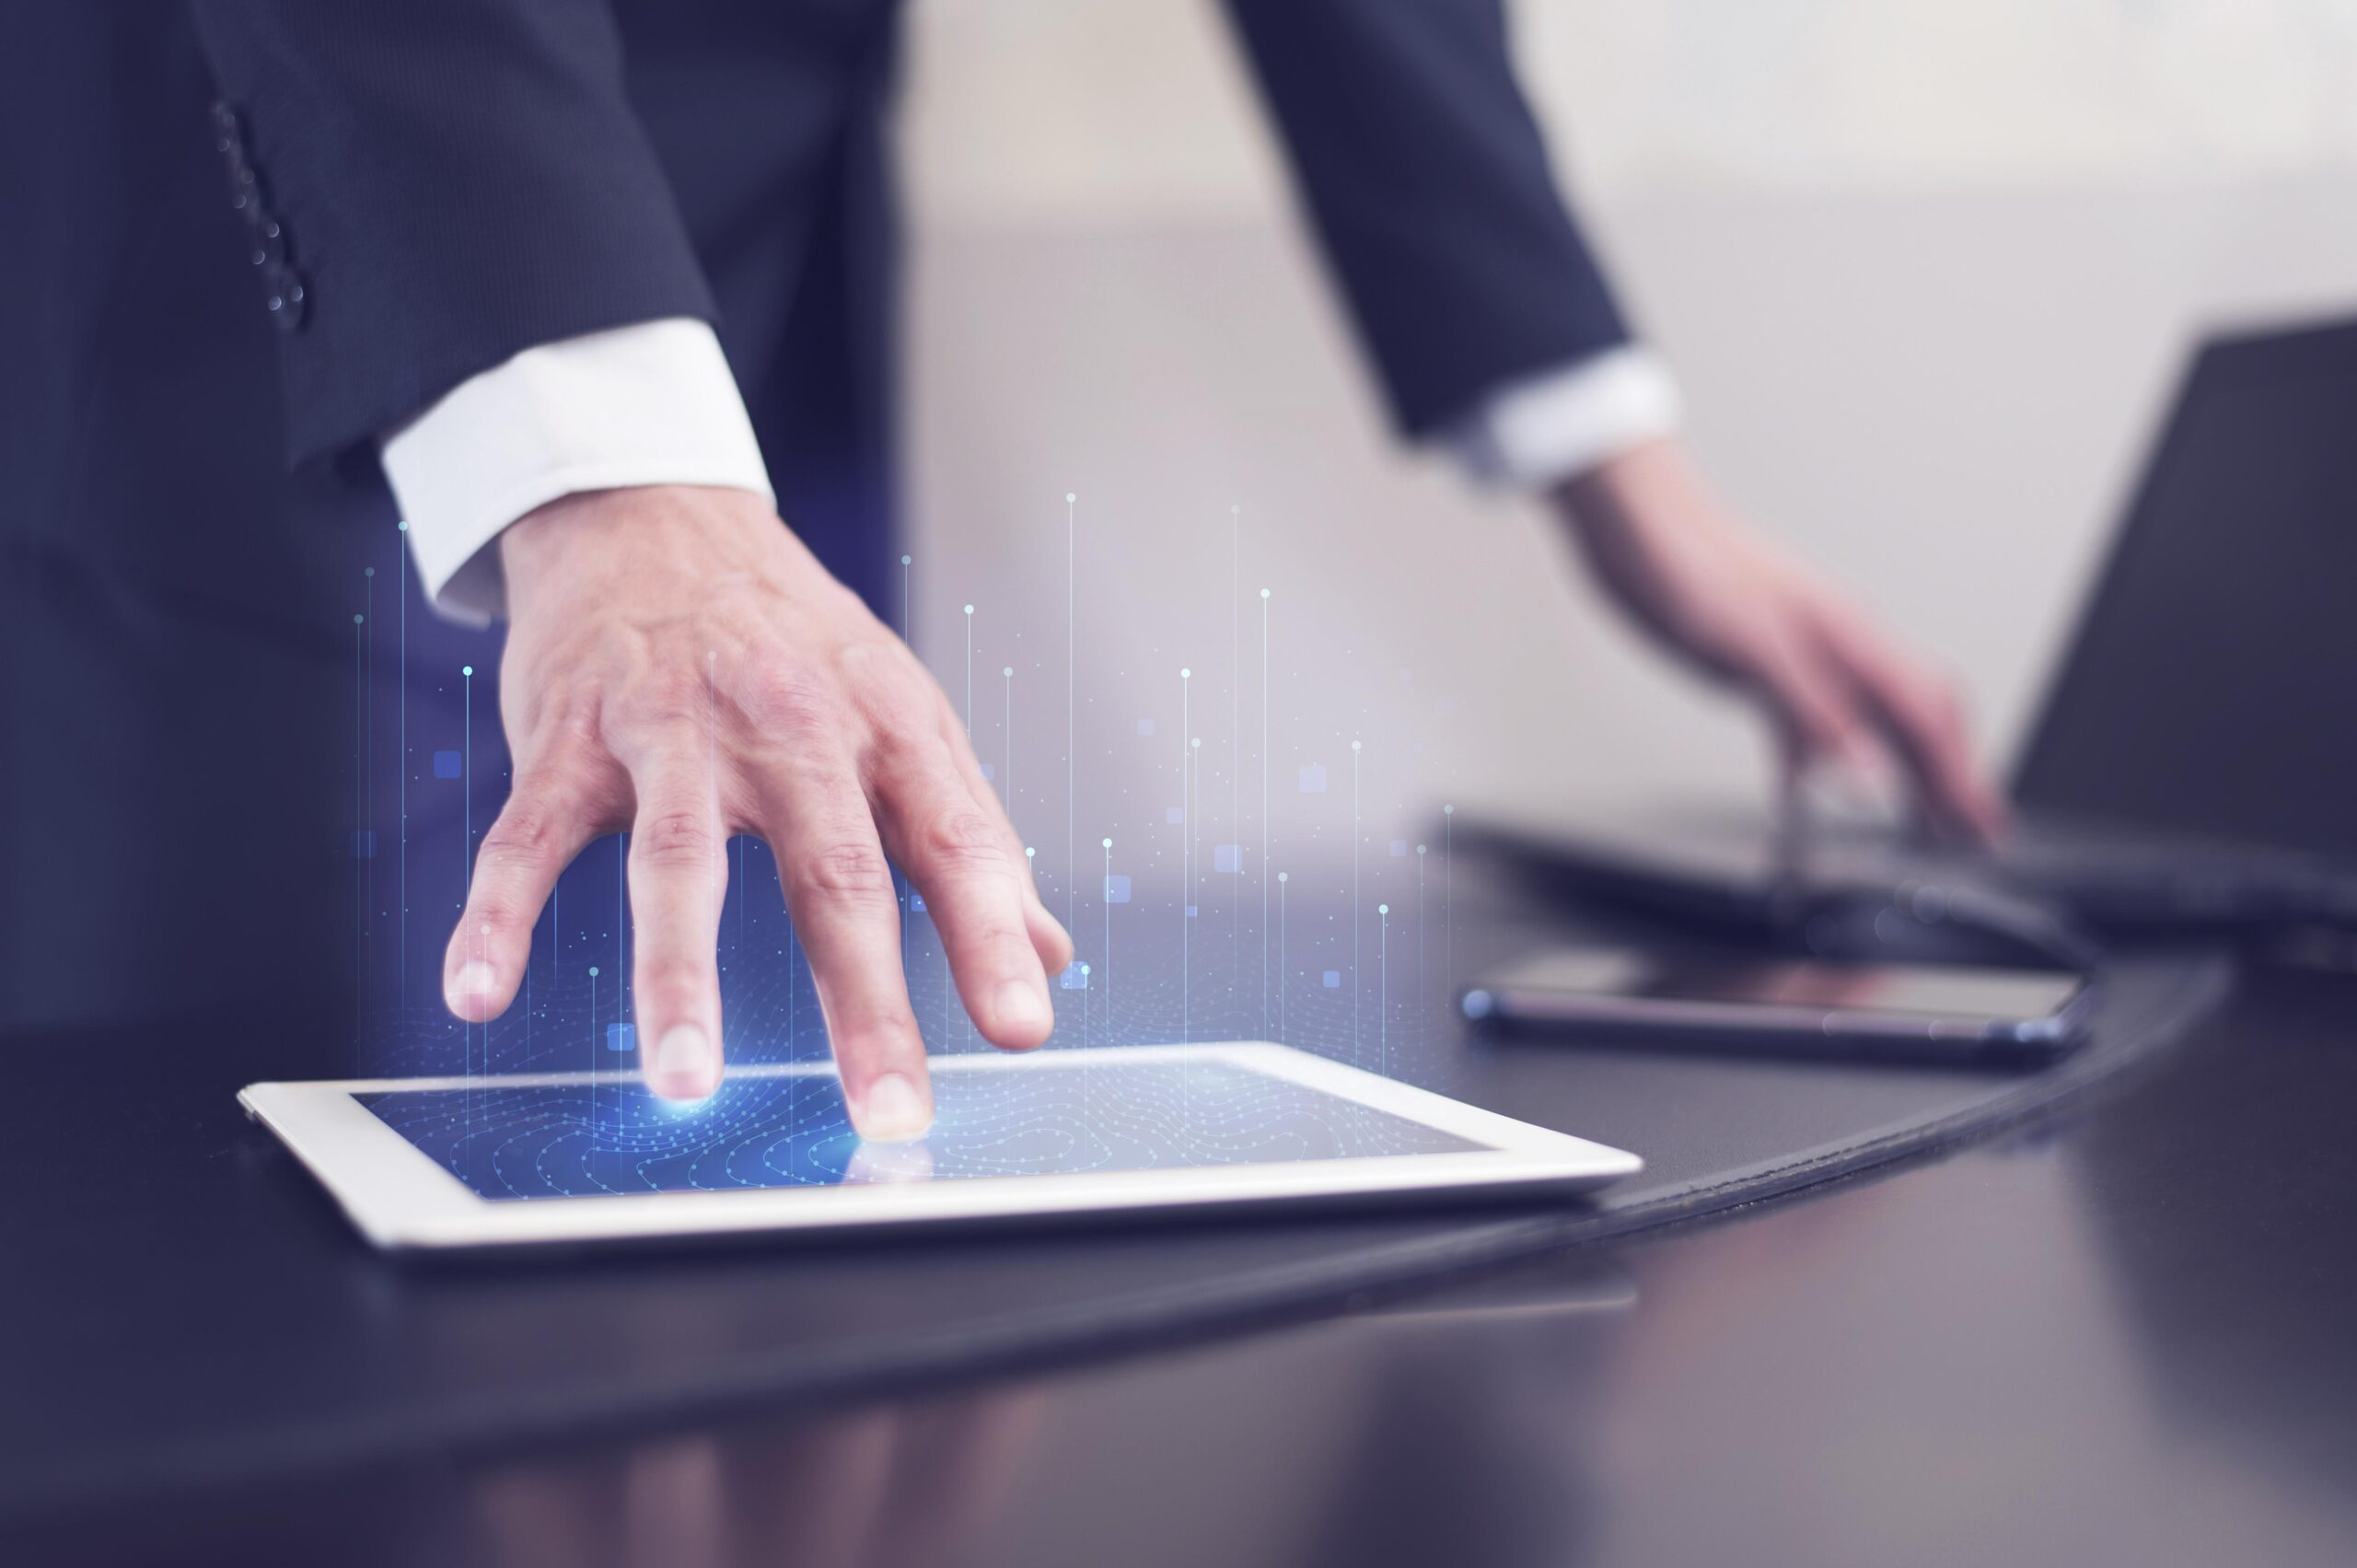 side-view-businessman-using-technology-tablet